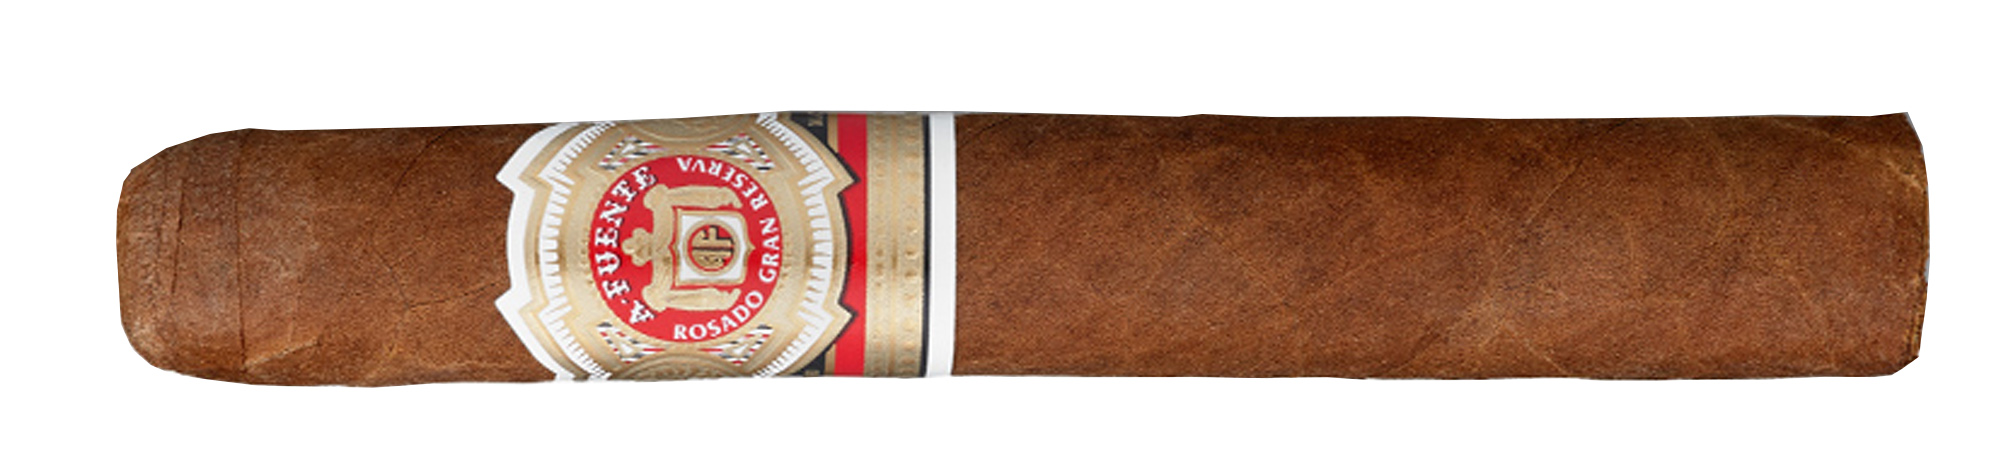 Best Cigar of the year at Cuenca Cigars